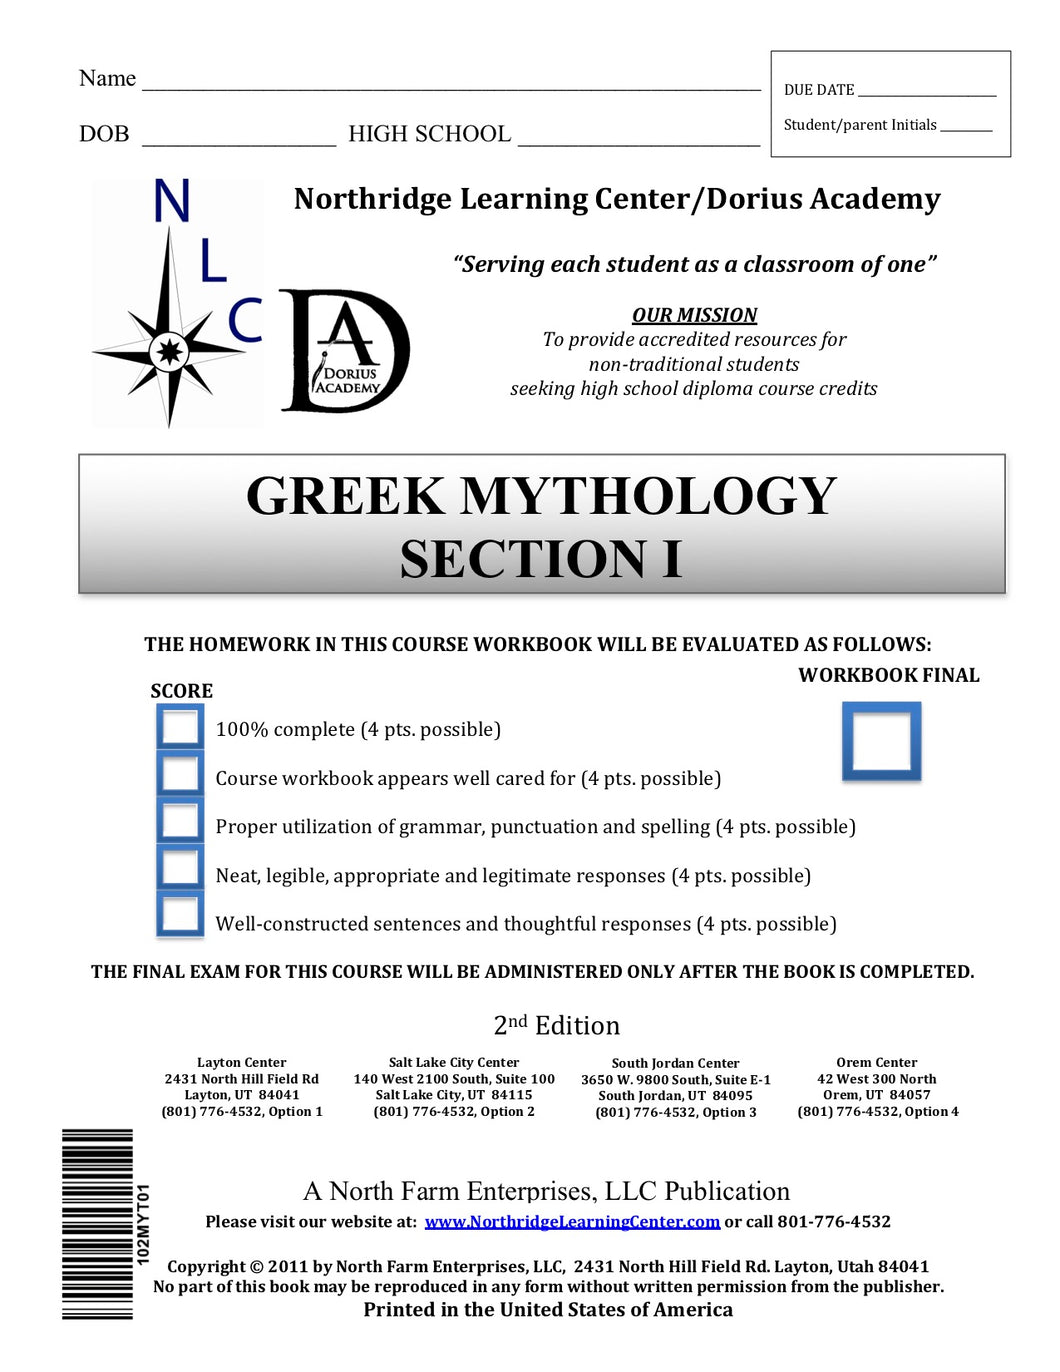 Greek Mythology, Section I